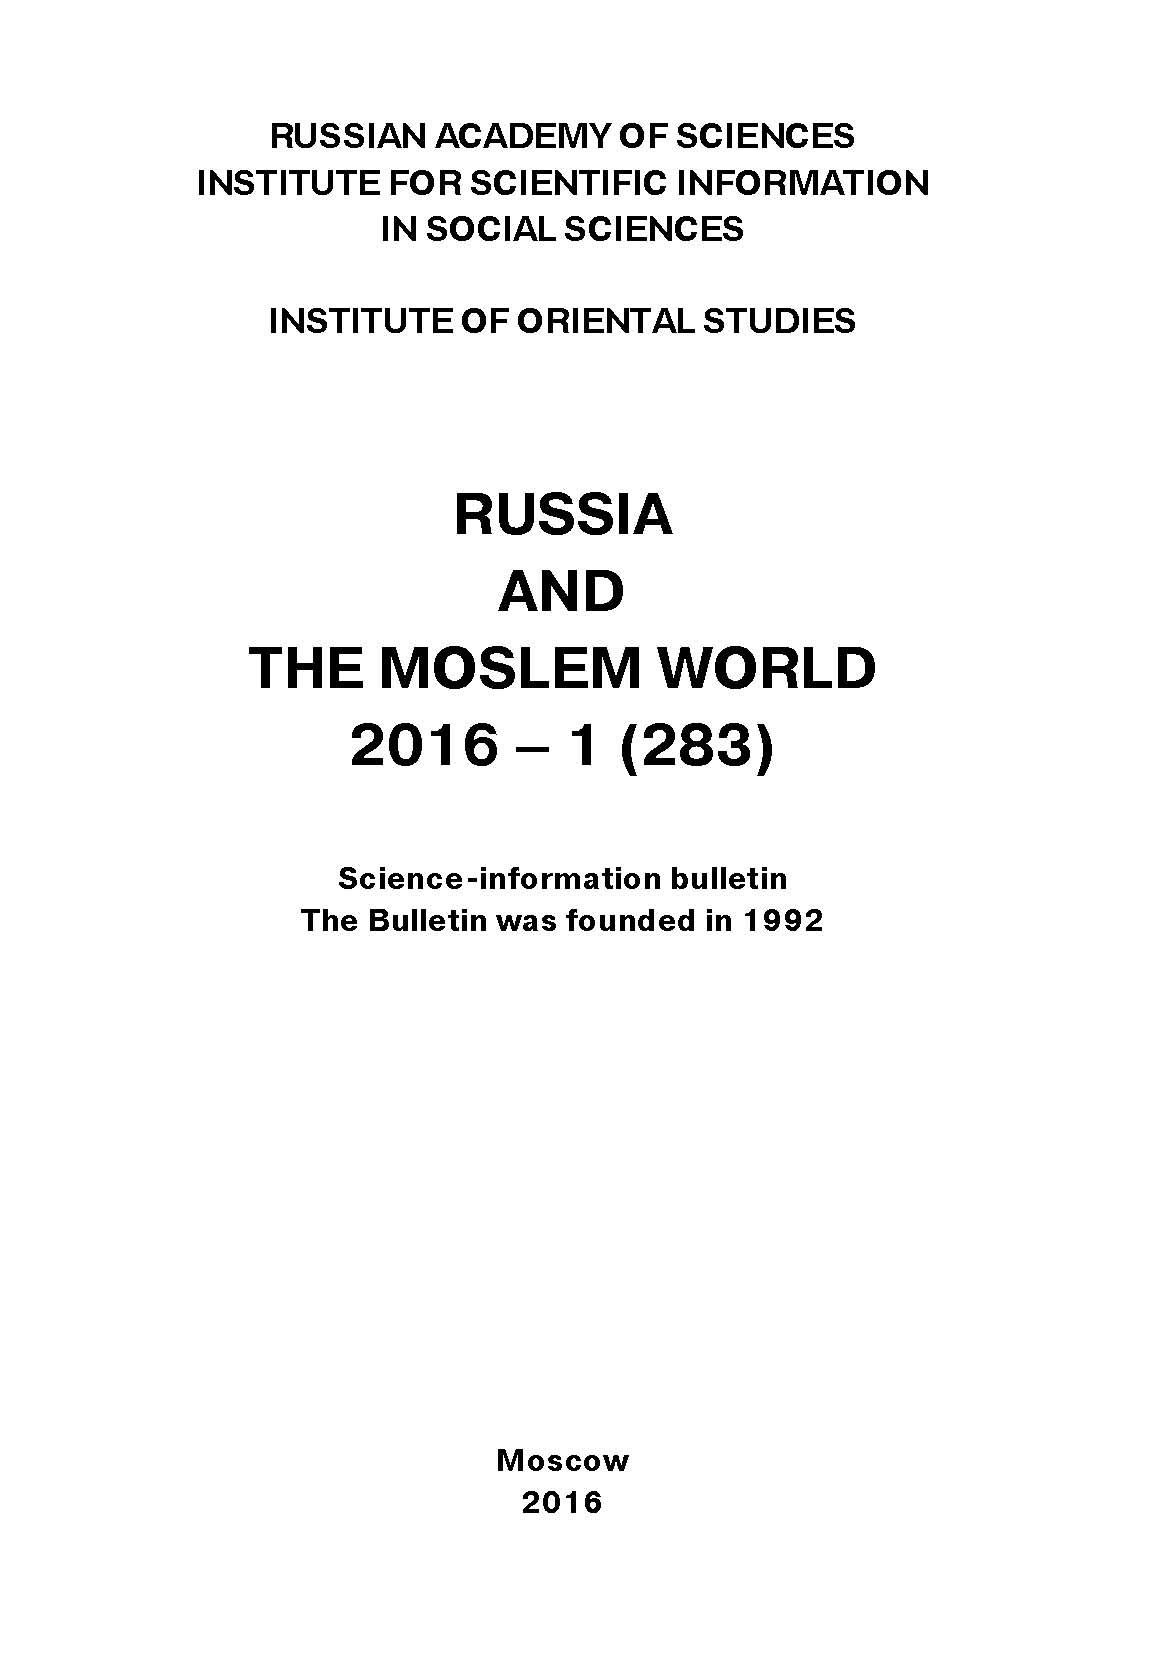 Сборник статей Russia and the Moslem World № 01 / 2016 сборник статей russia and the moslem world 05 2016